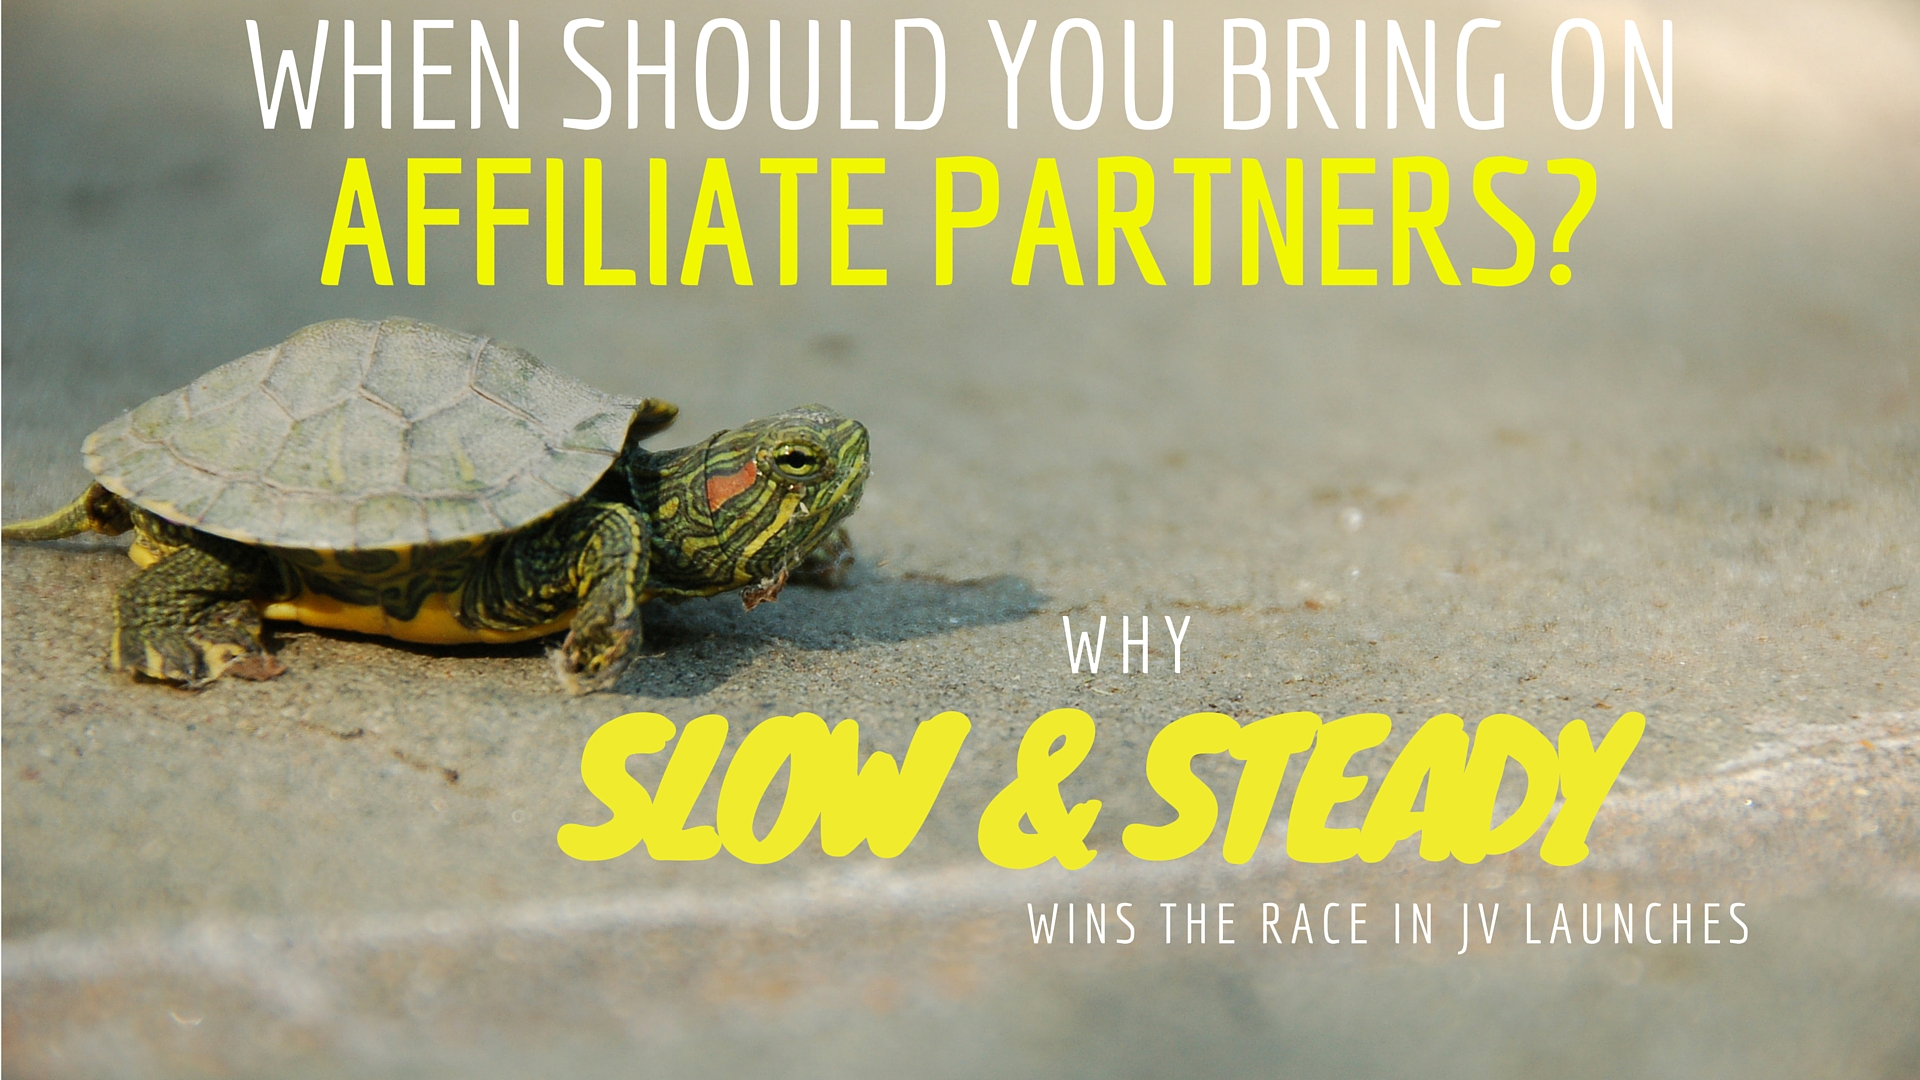 When should you bring on affiliate partners